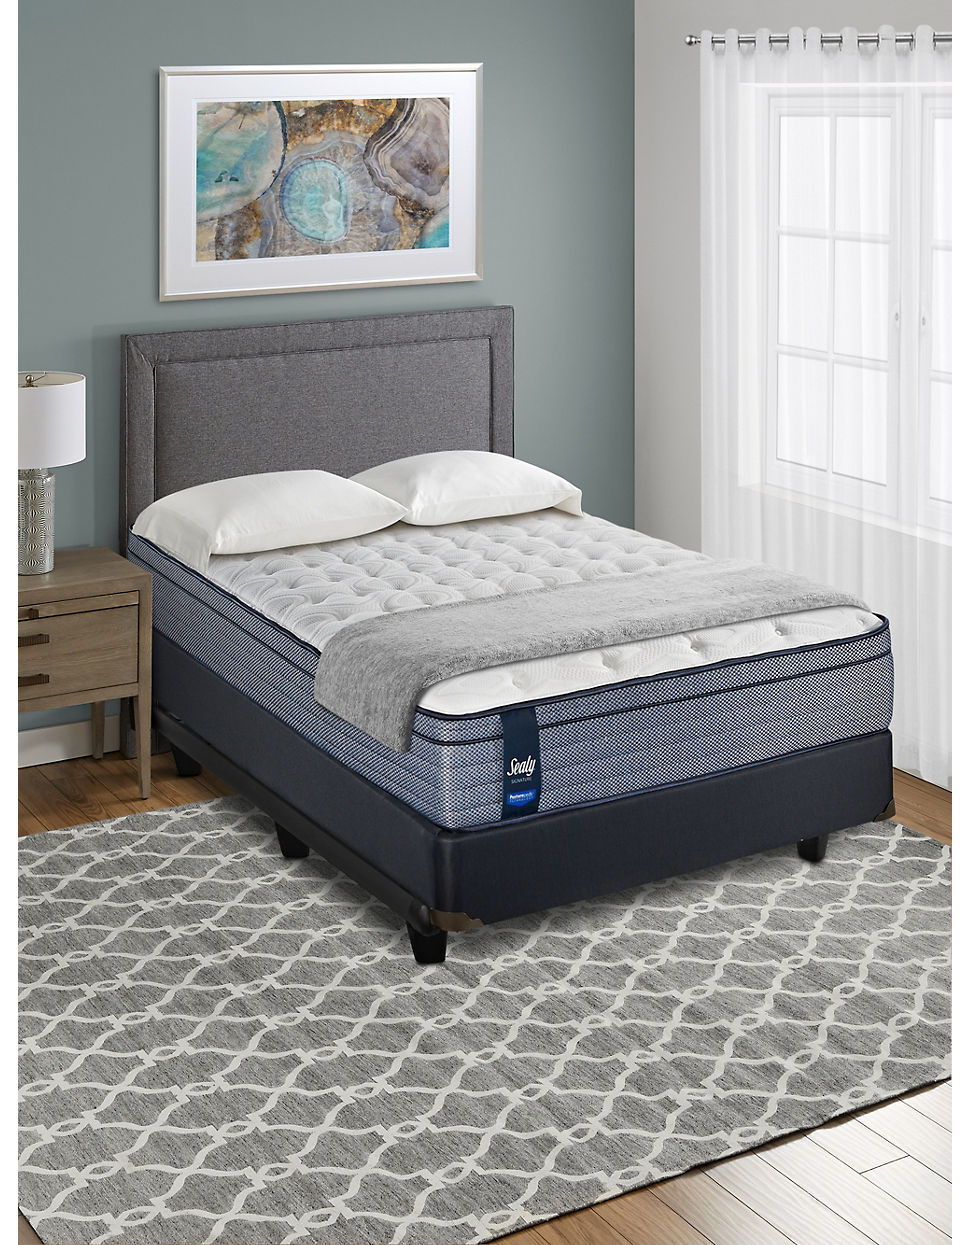 sears bed cover ga costco s king xl liquor cheap springs store twin mattress thin for box